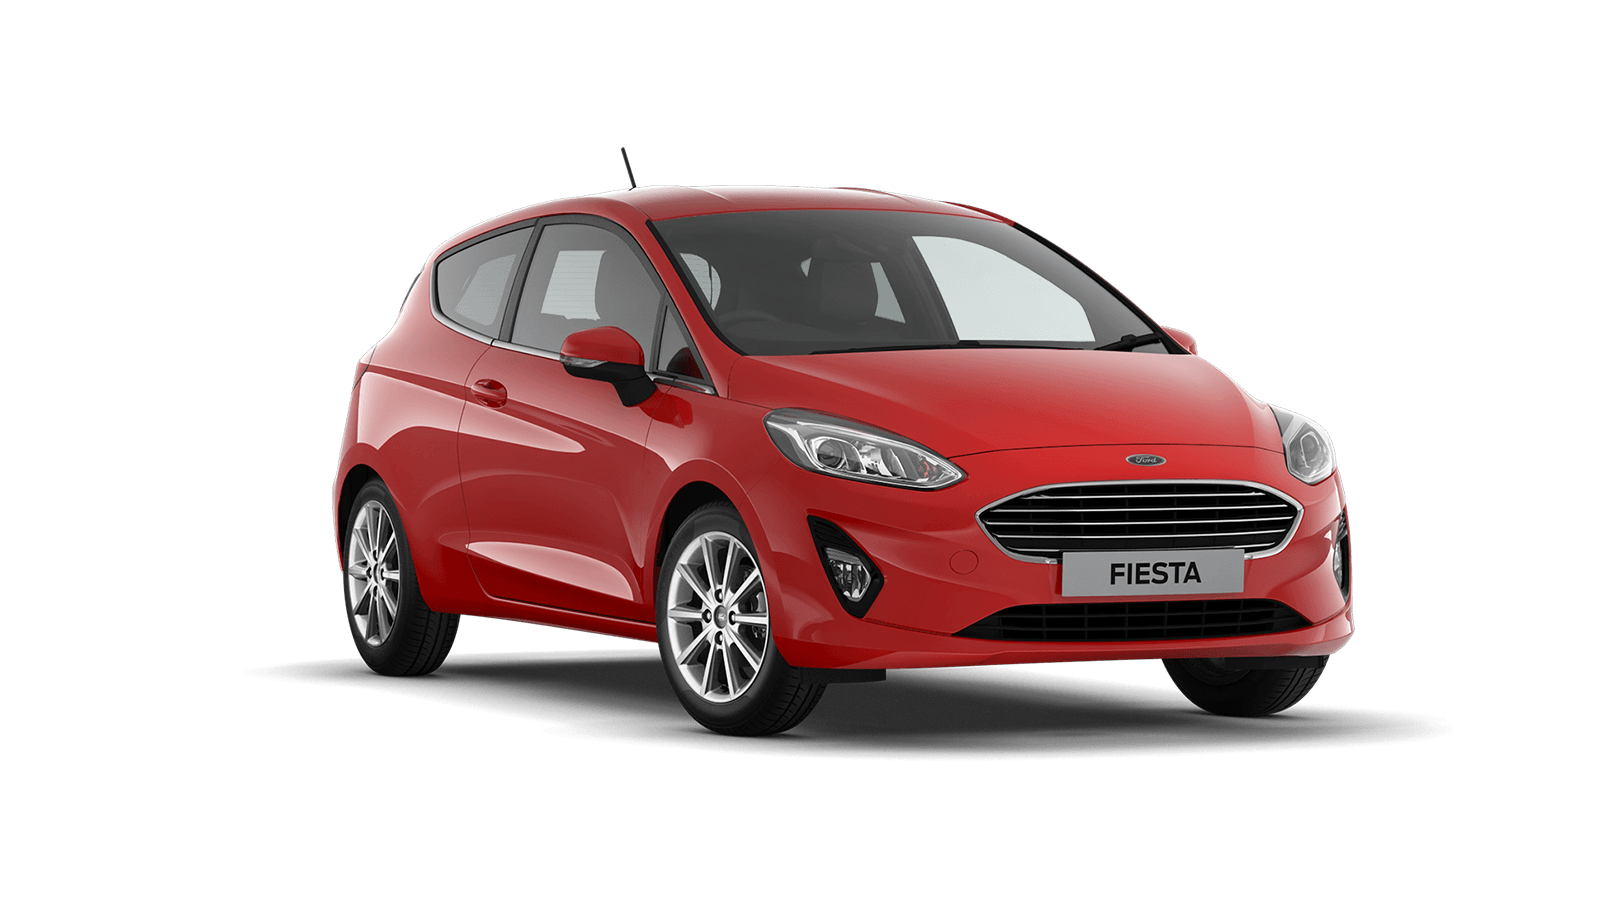 A Review Of The New Ford Fiesta